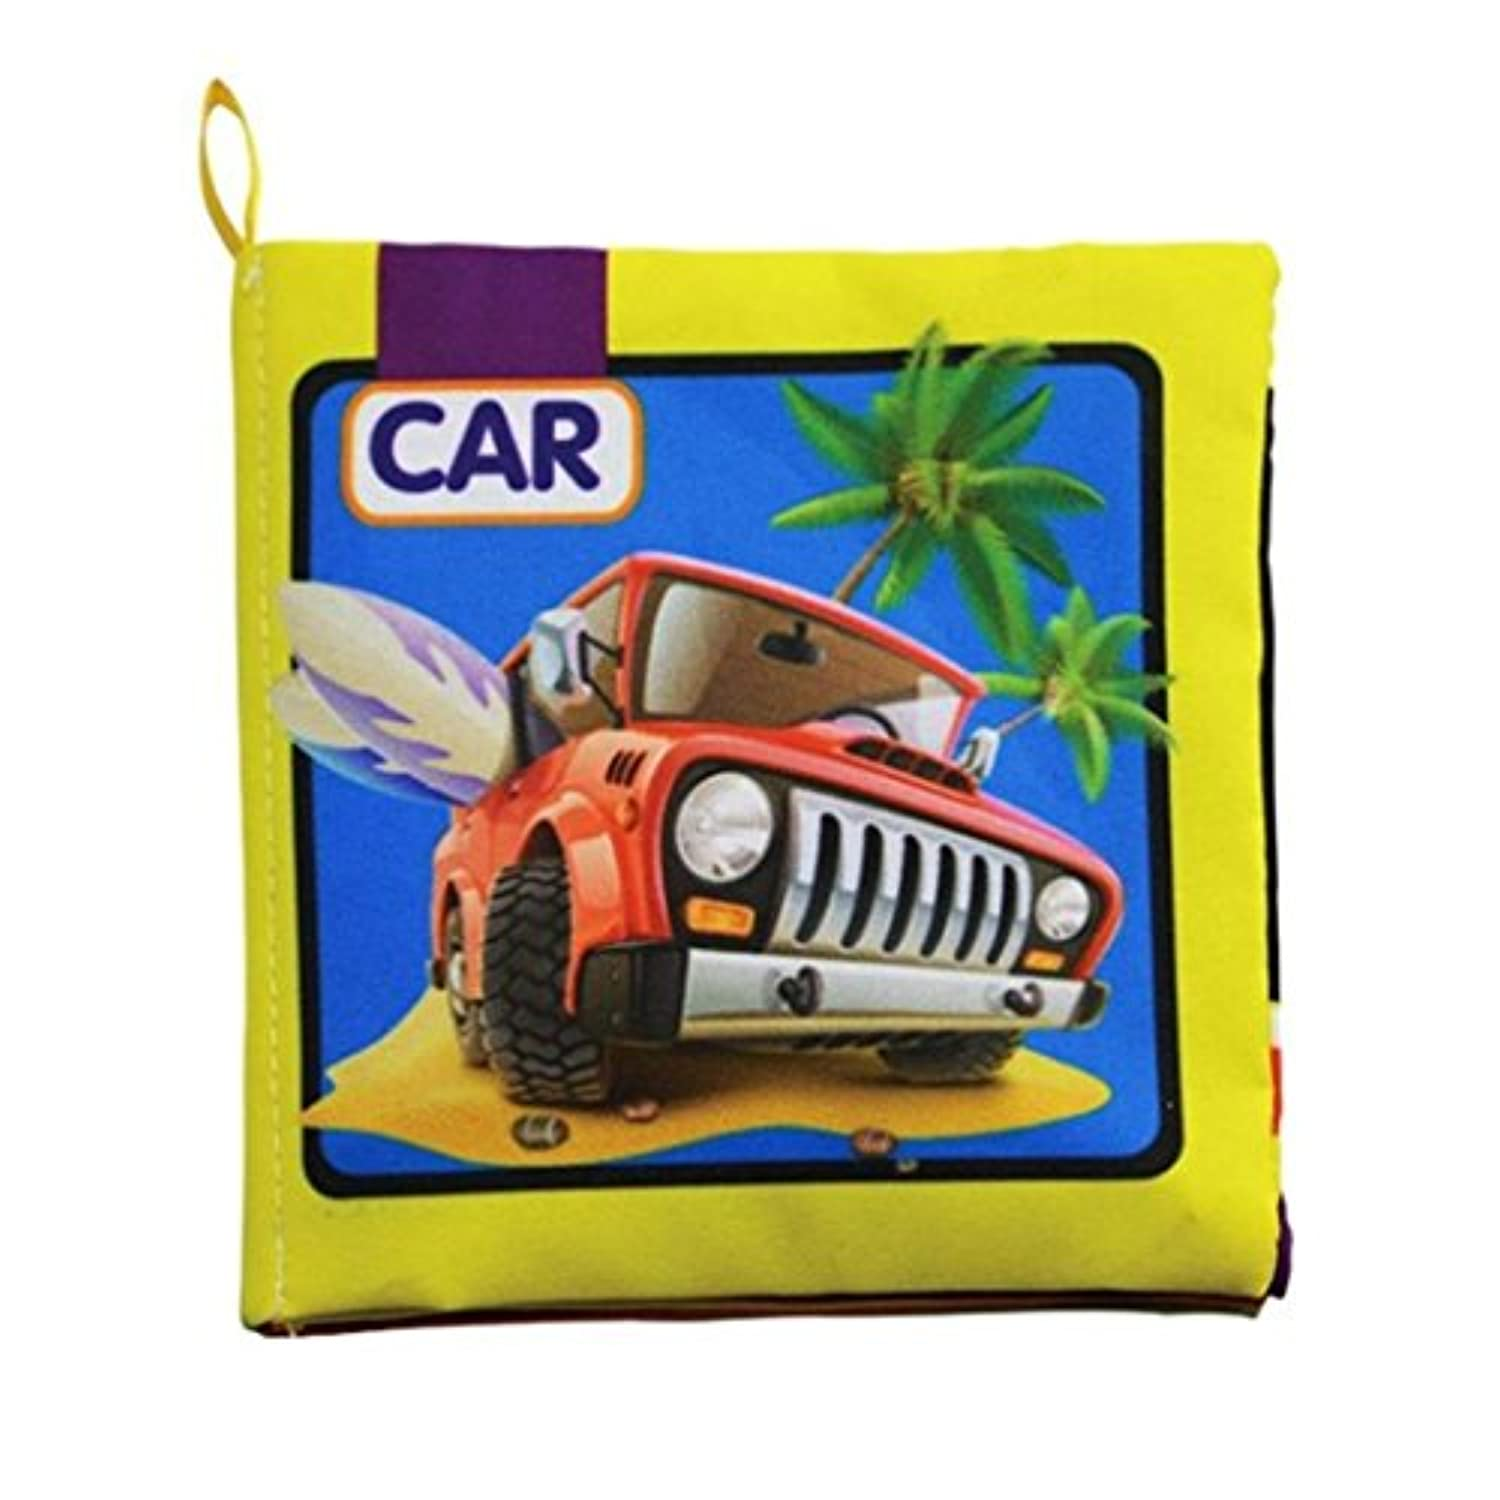 (Traffic) - E-SCENERY Newest Baby Cloth Books, Early Education Learning Toys Activity Crinkle Cloth Book for Toddler, Infants and Kids (Traffic)